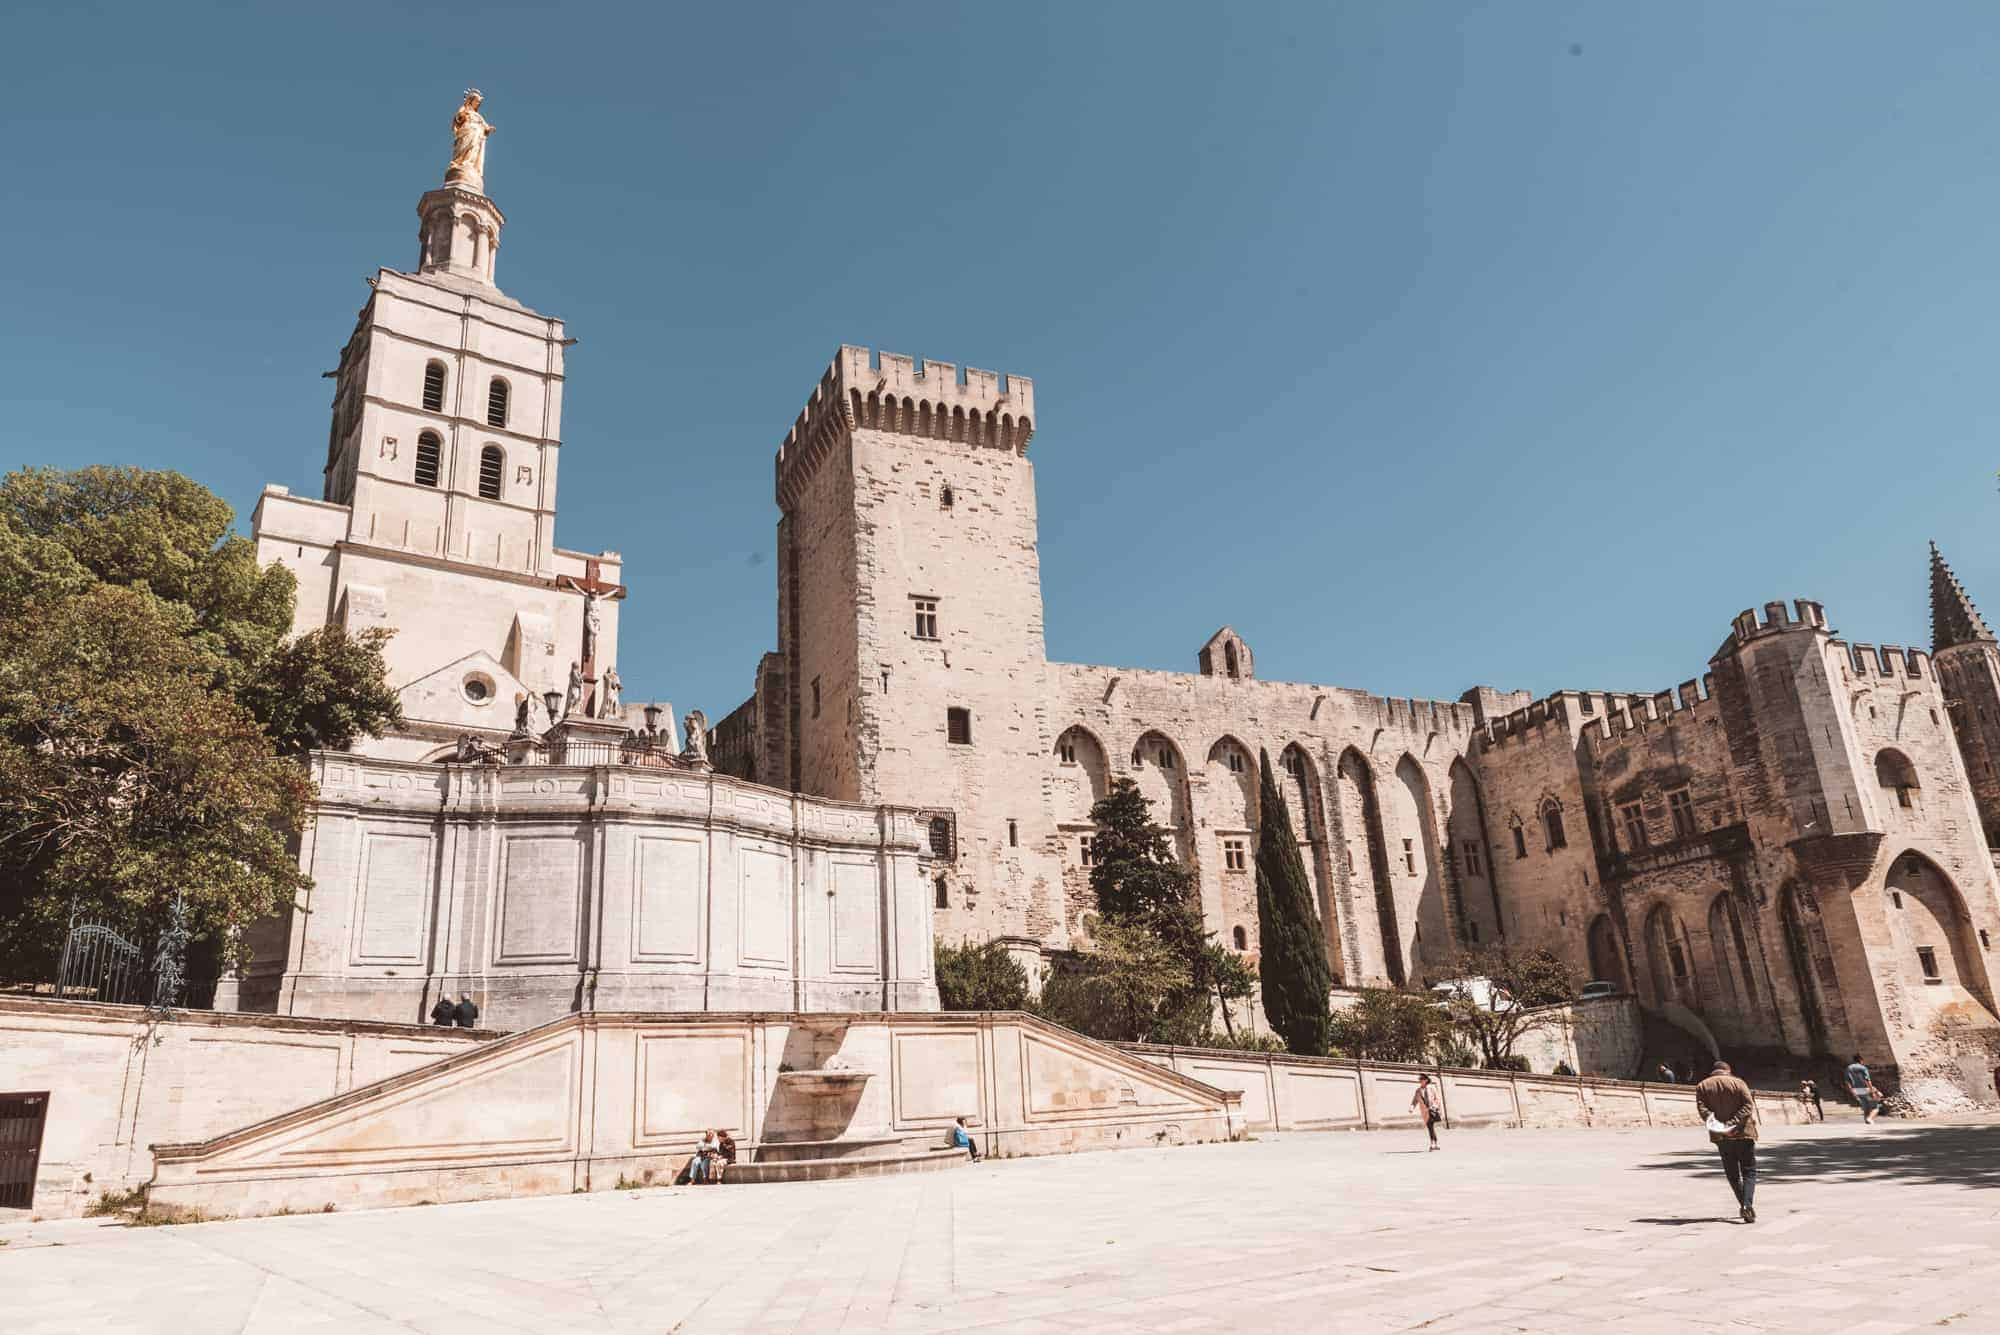 Popes Palace in Avignon, France